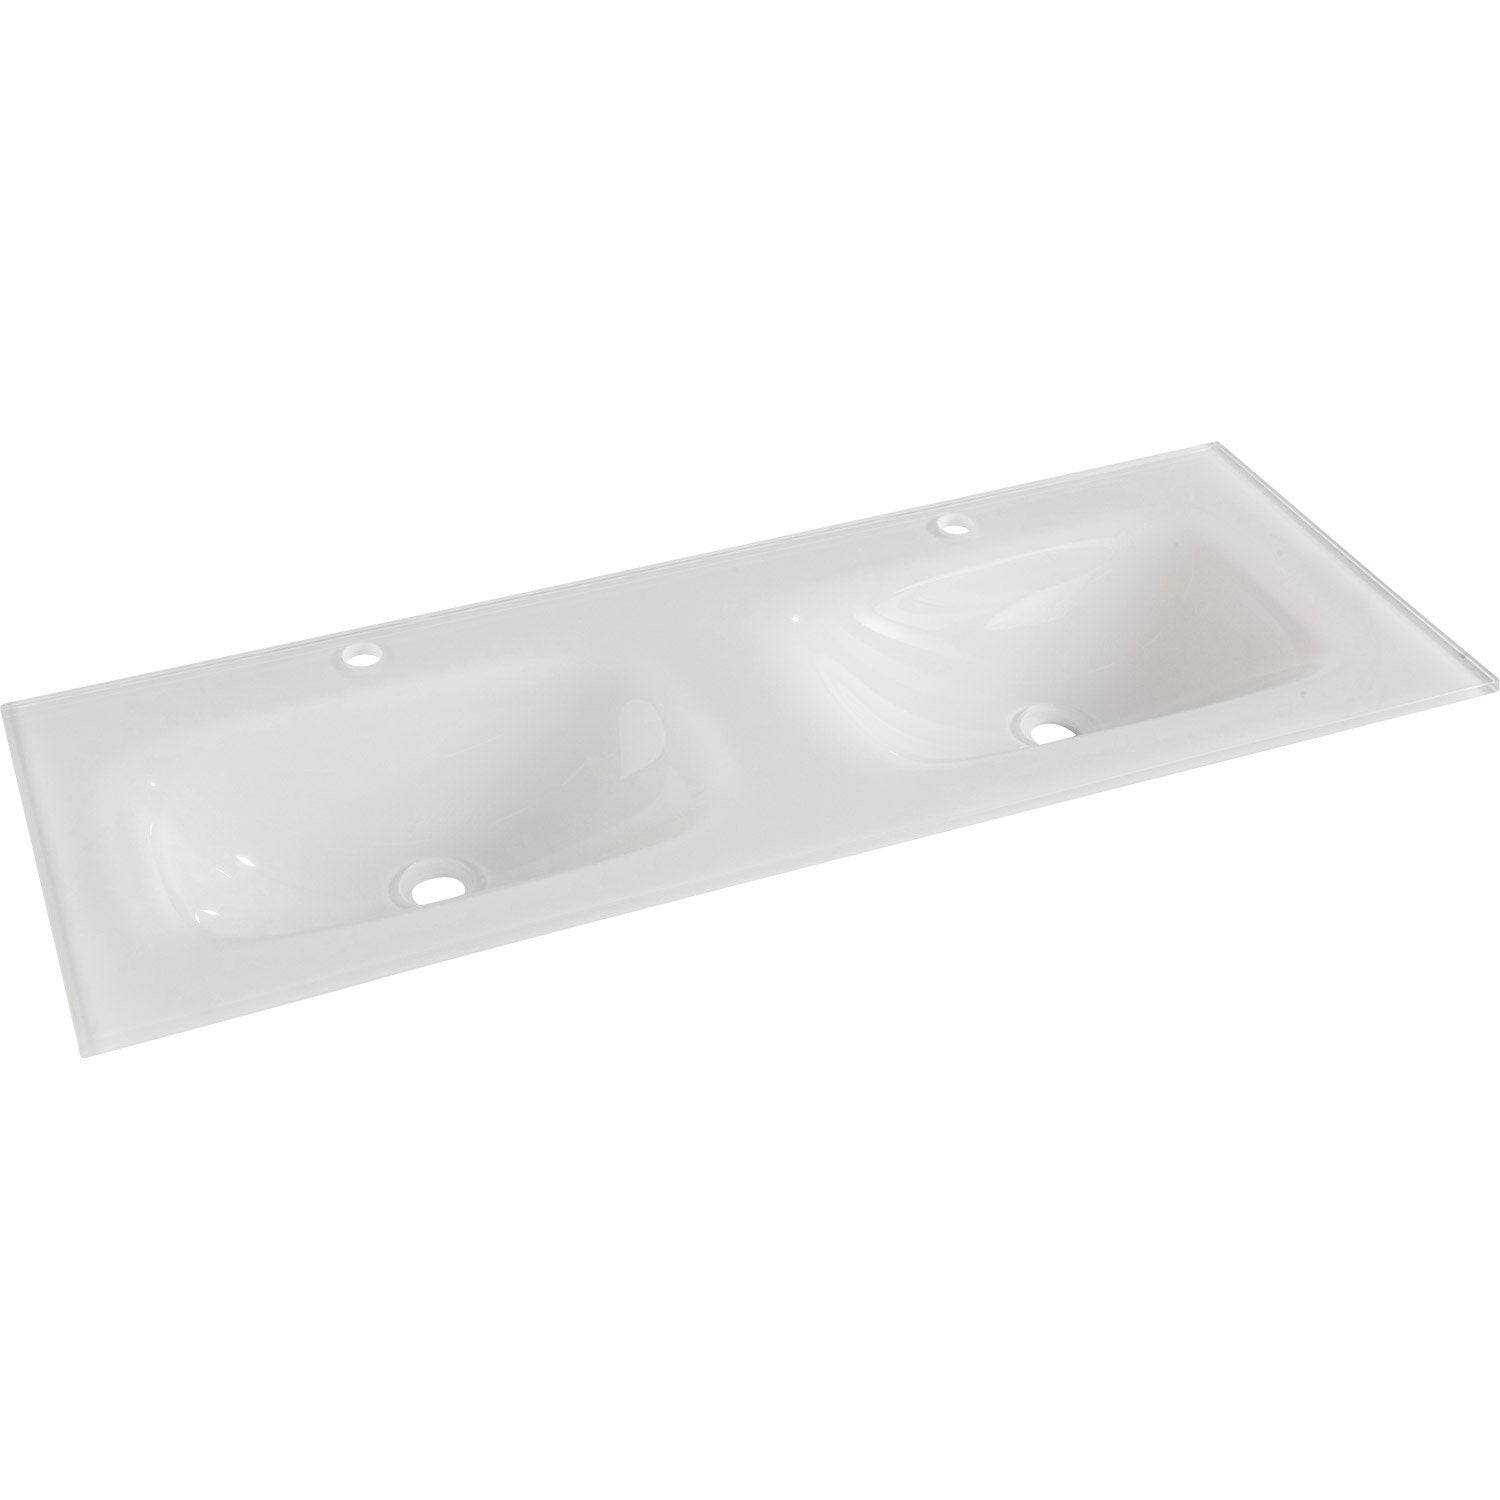 Plan vasque double opale verre tremp 121 cm leroy merlin for Double vasque salle de bain en verre